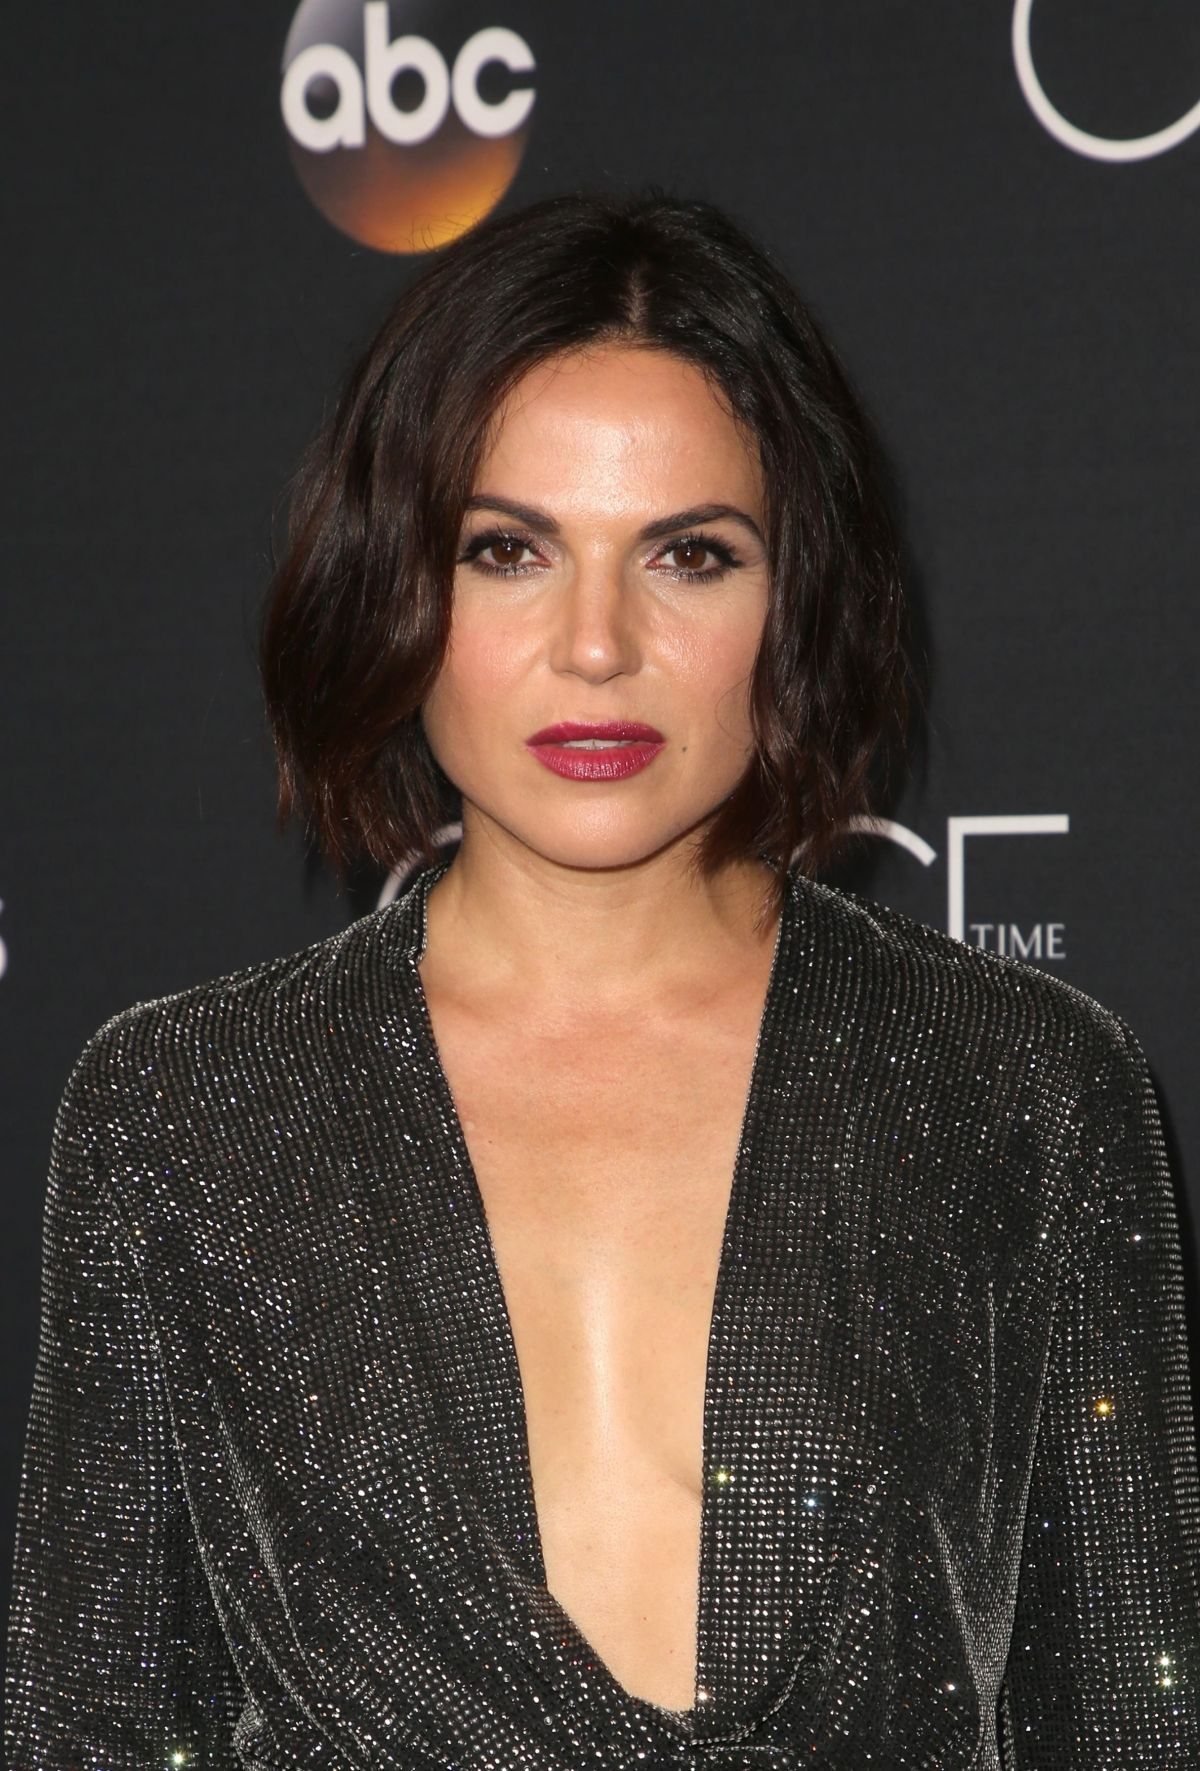 Lana Parrilla naked (49 foto and video), Topless, Paparazzi, Twitter, lingerie 2020